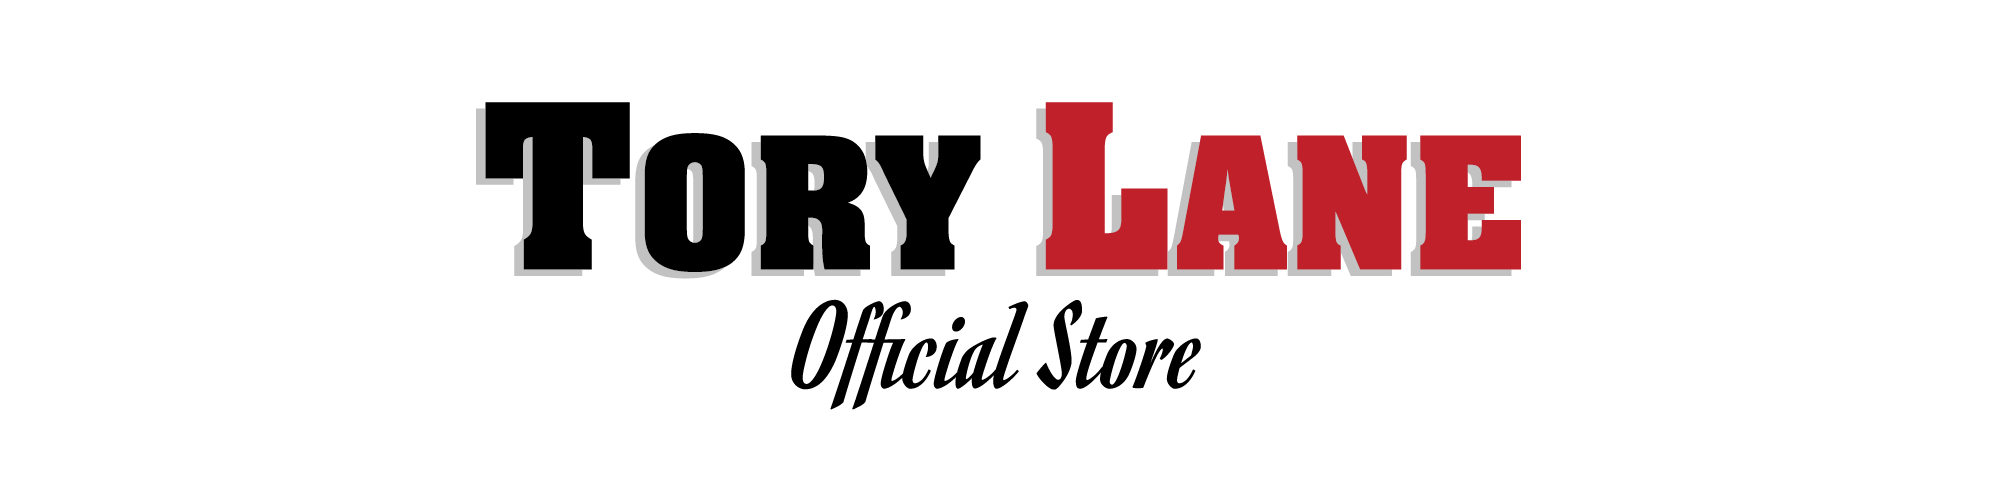 Tory Lane  DVD, sex toy and Streaming Porn Video on Demand